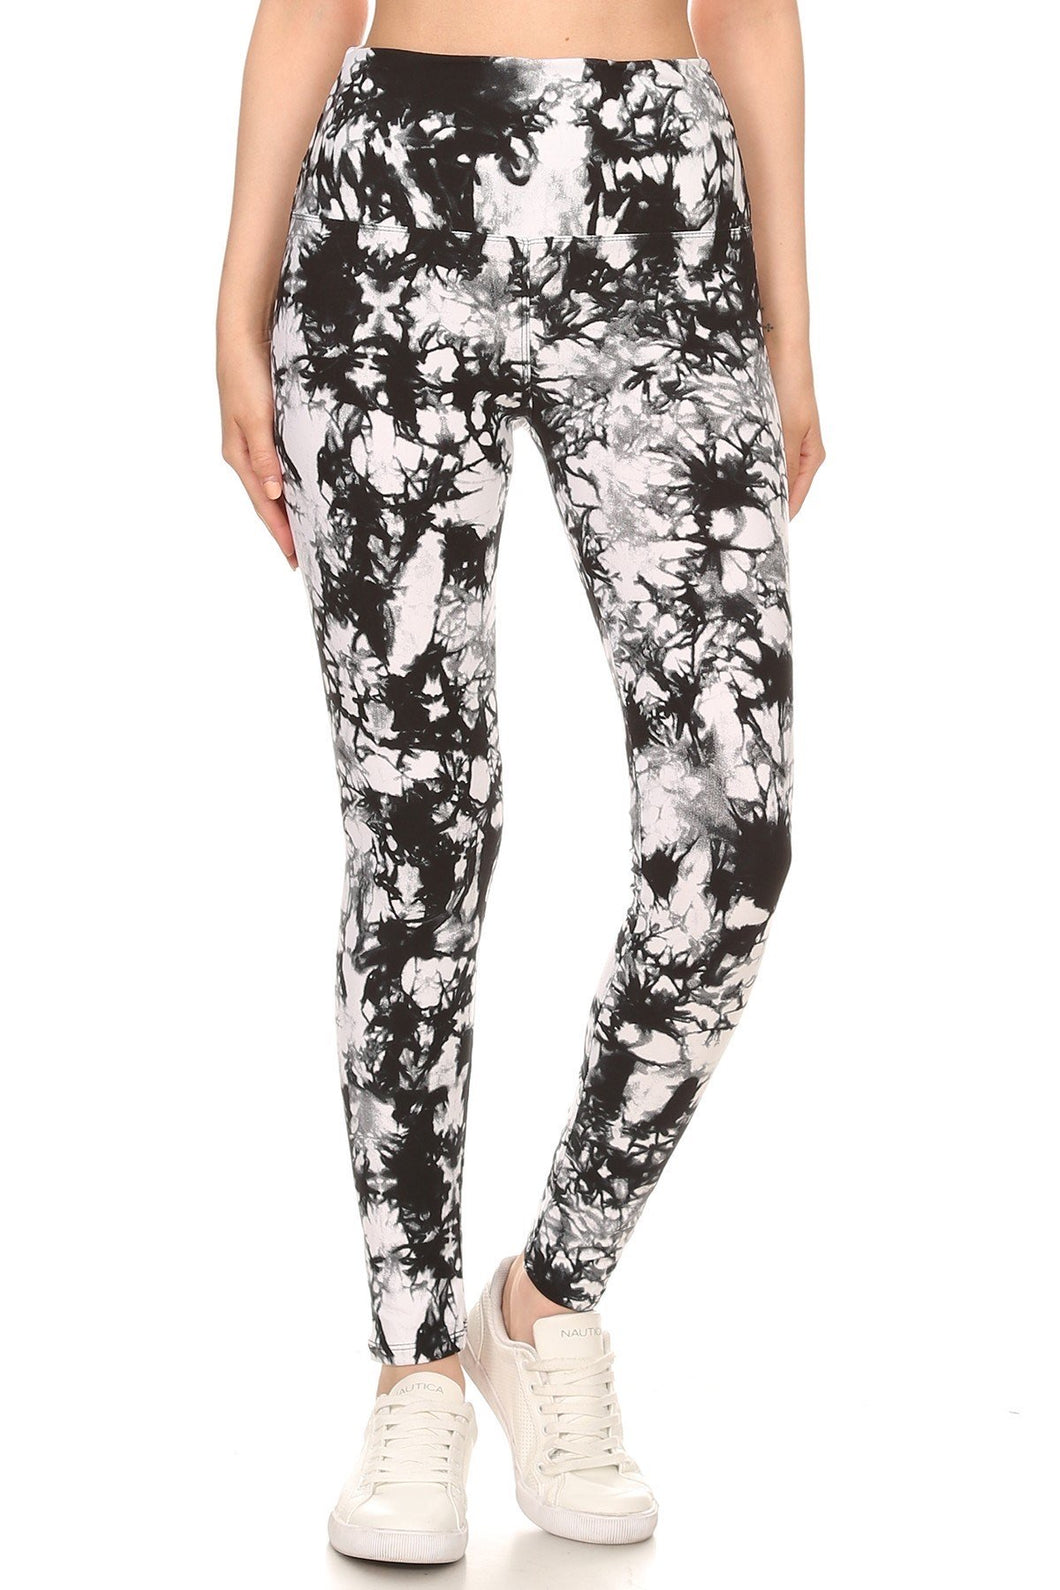 "B/W Tie Dye - 5"" Yoga Band Leggings"